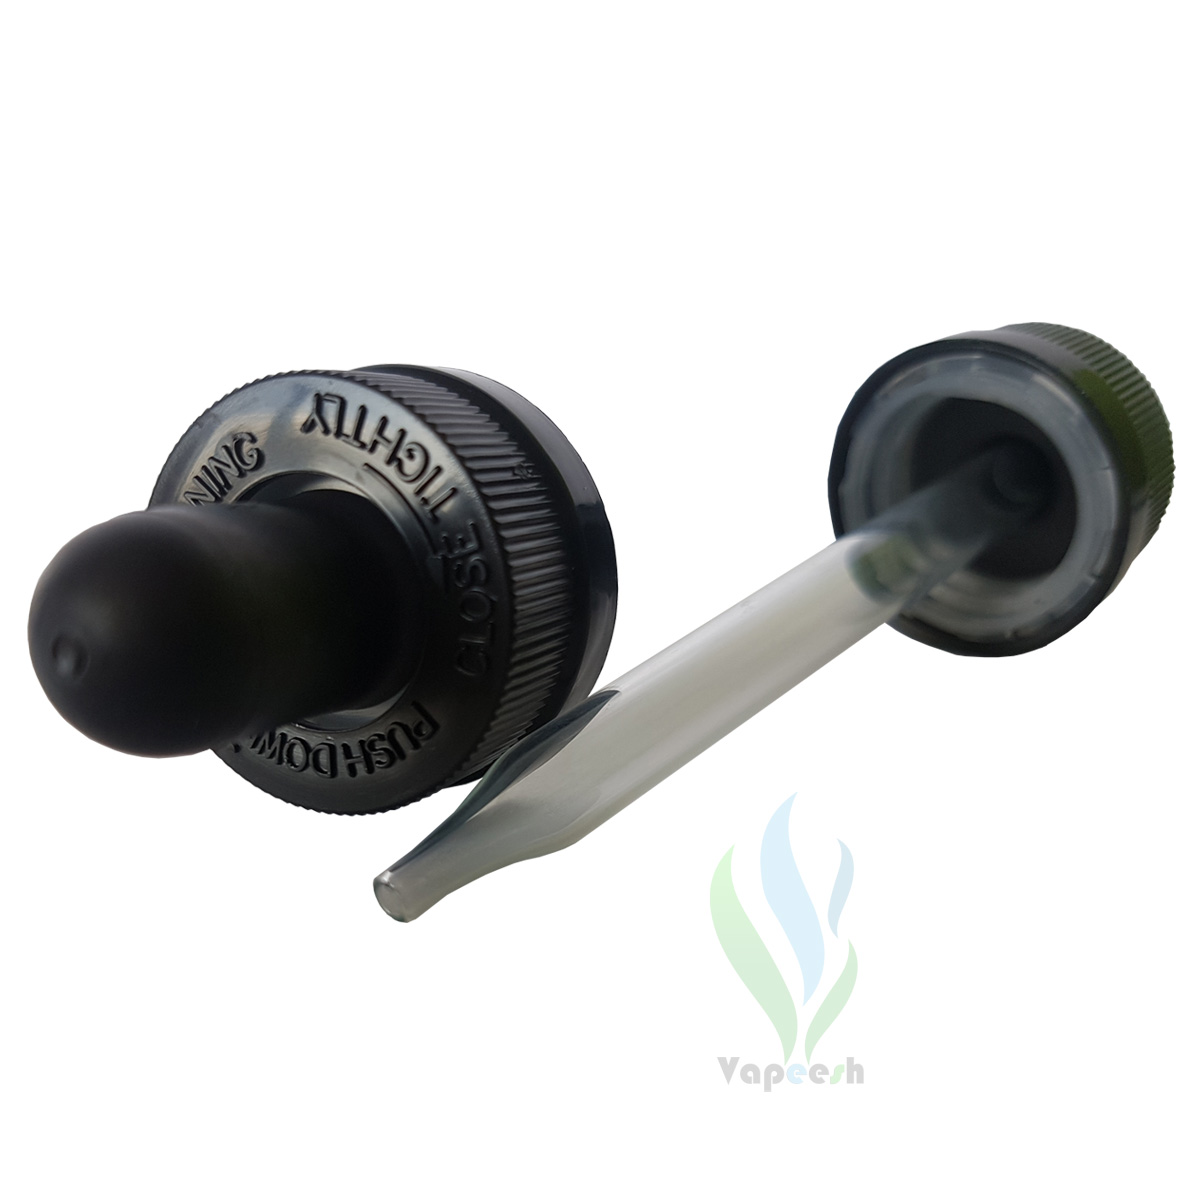 2 black eye-dropper closures with glass tube